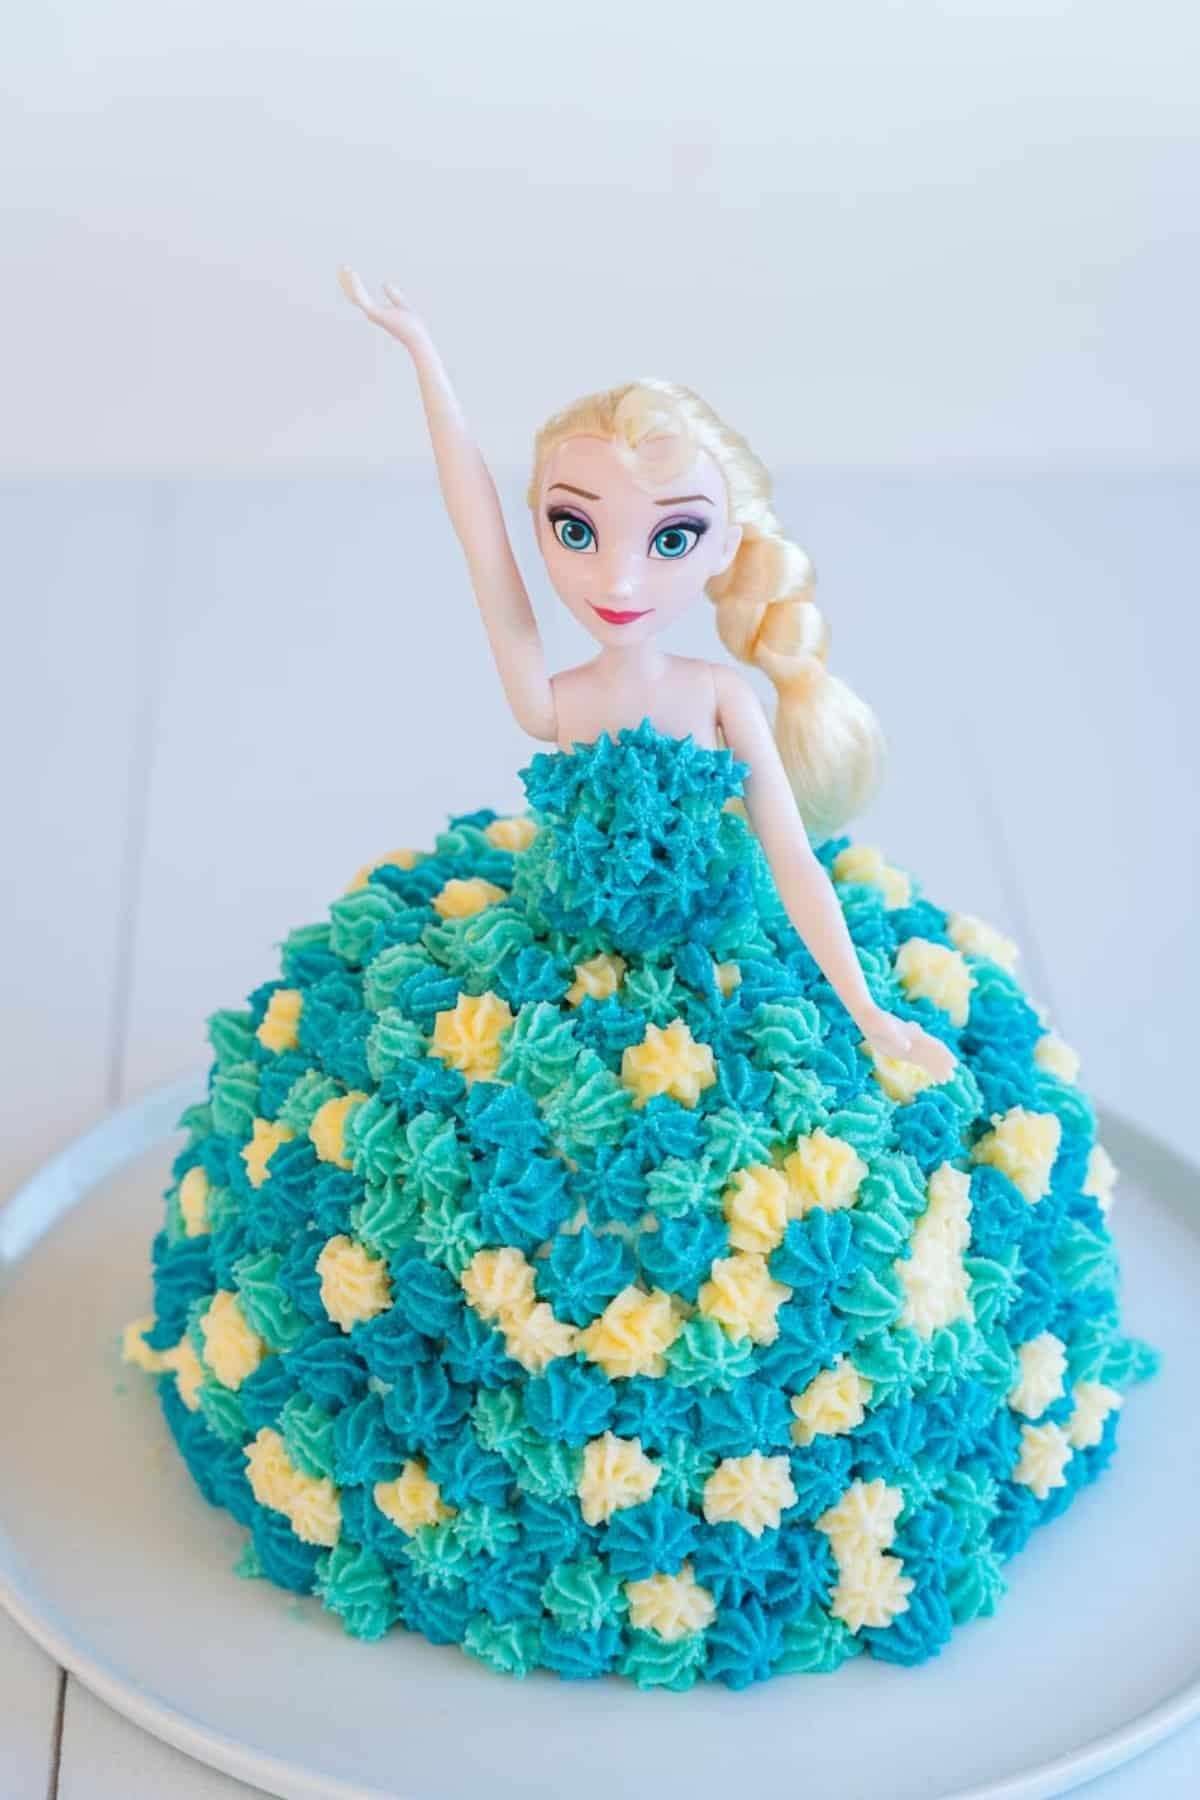 Birthday cake topped with an Elsa Doll, decorated with butter cream to look like a dress